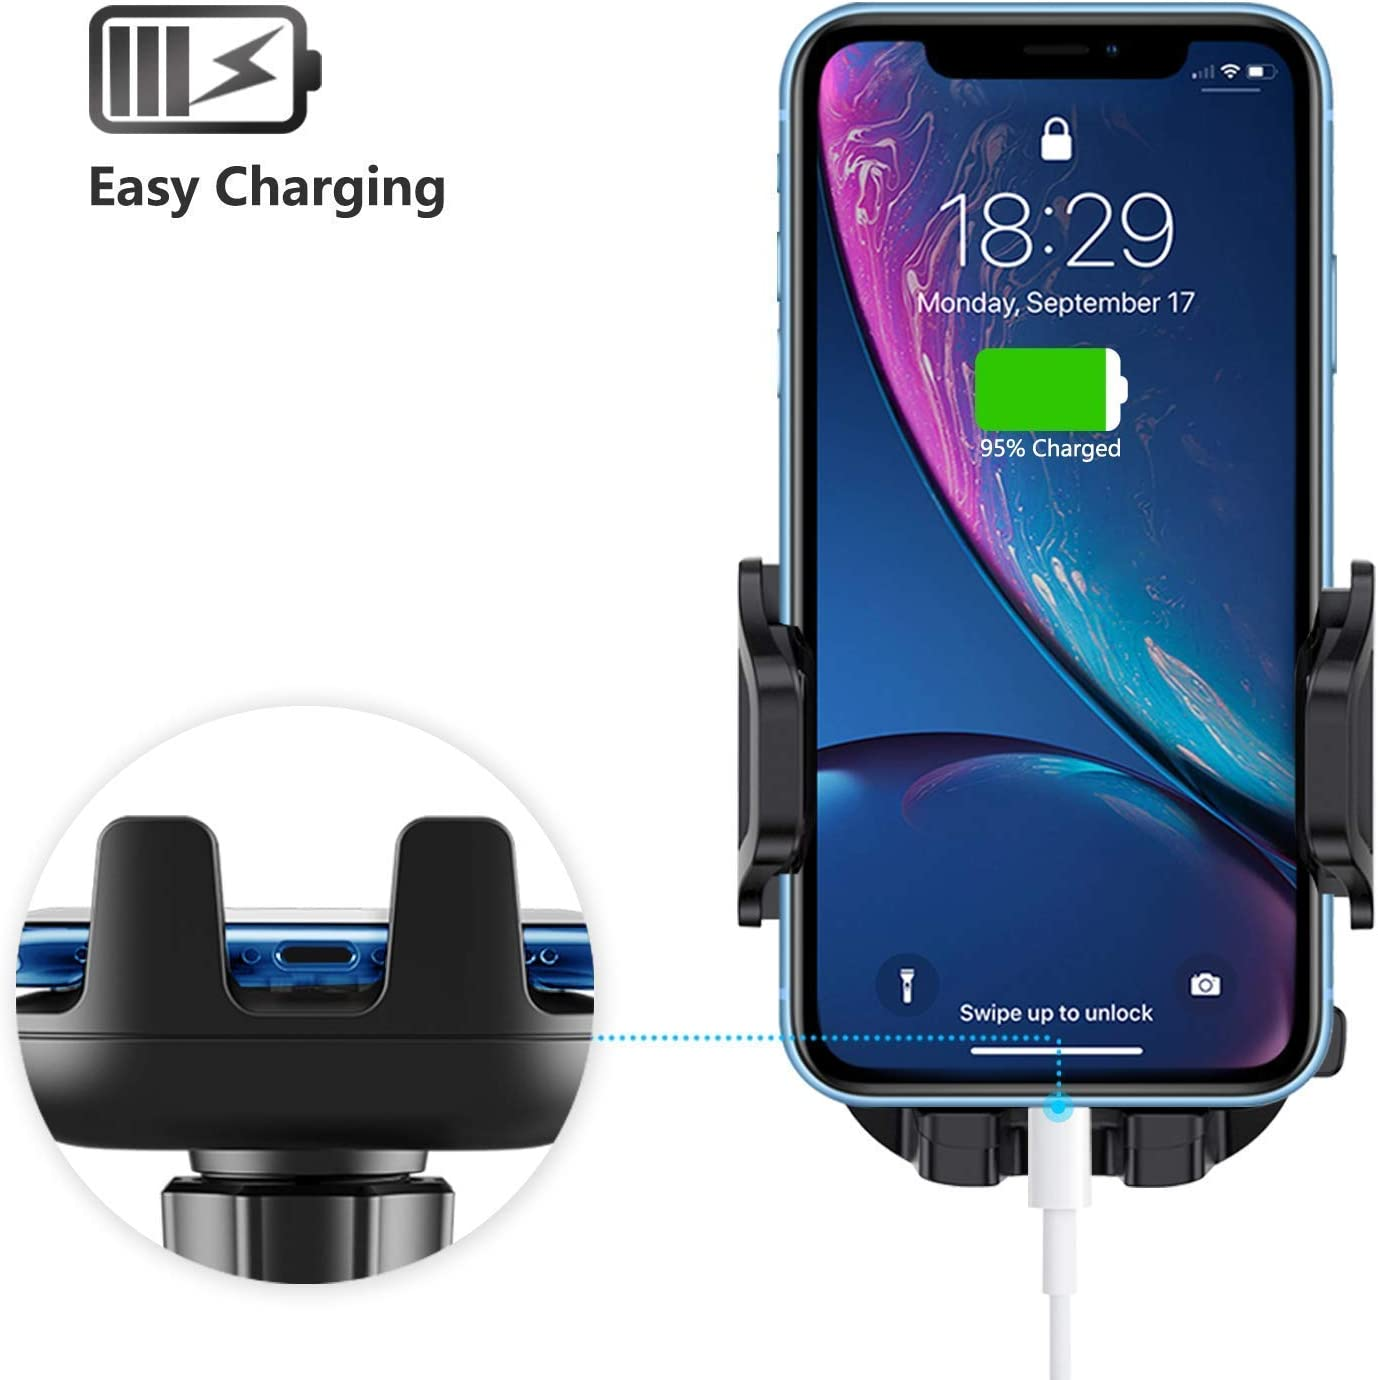 One Button Release Car Cradle Dashboard /& Windshield Car Air Vent Cell Phone Holder Stand with Telescopic Arm /& Dashboard Pad Strong Sticky Suction Compatible iPhone Samsung etc Car Phone Mount